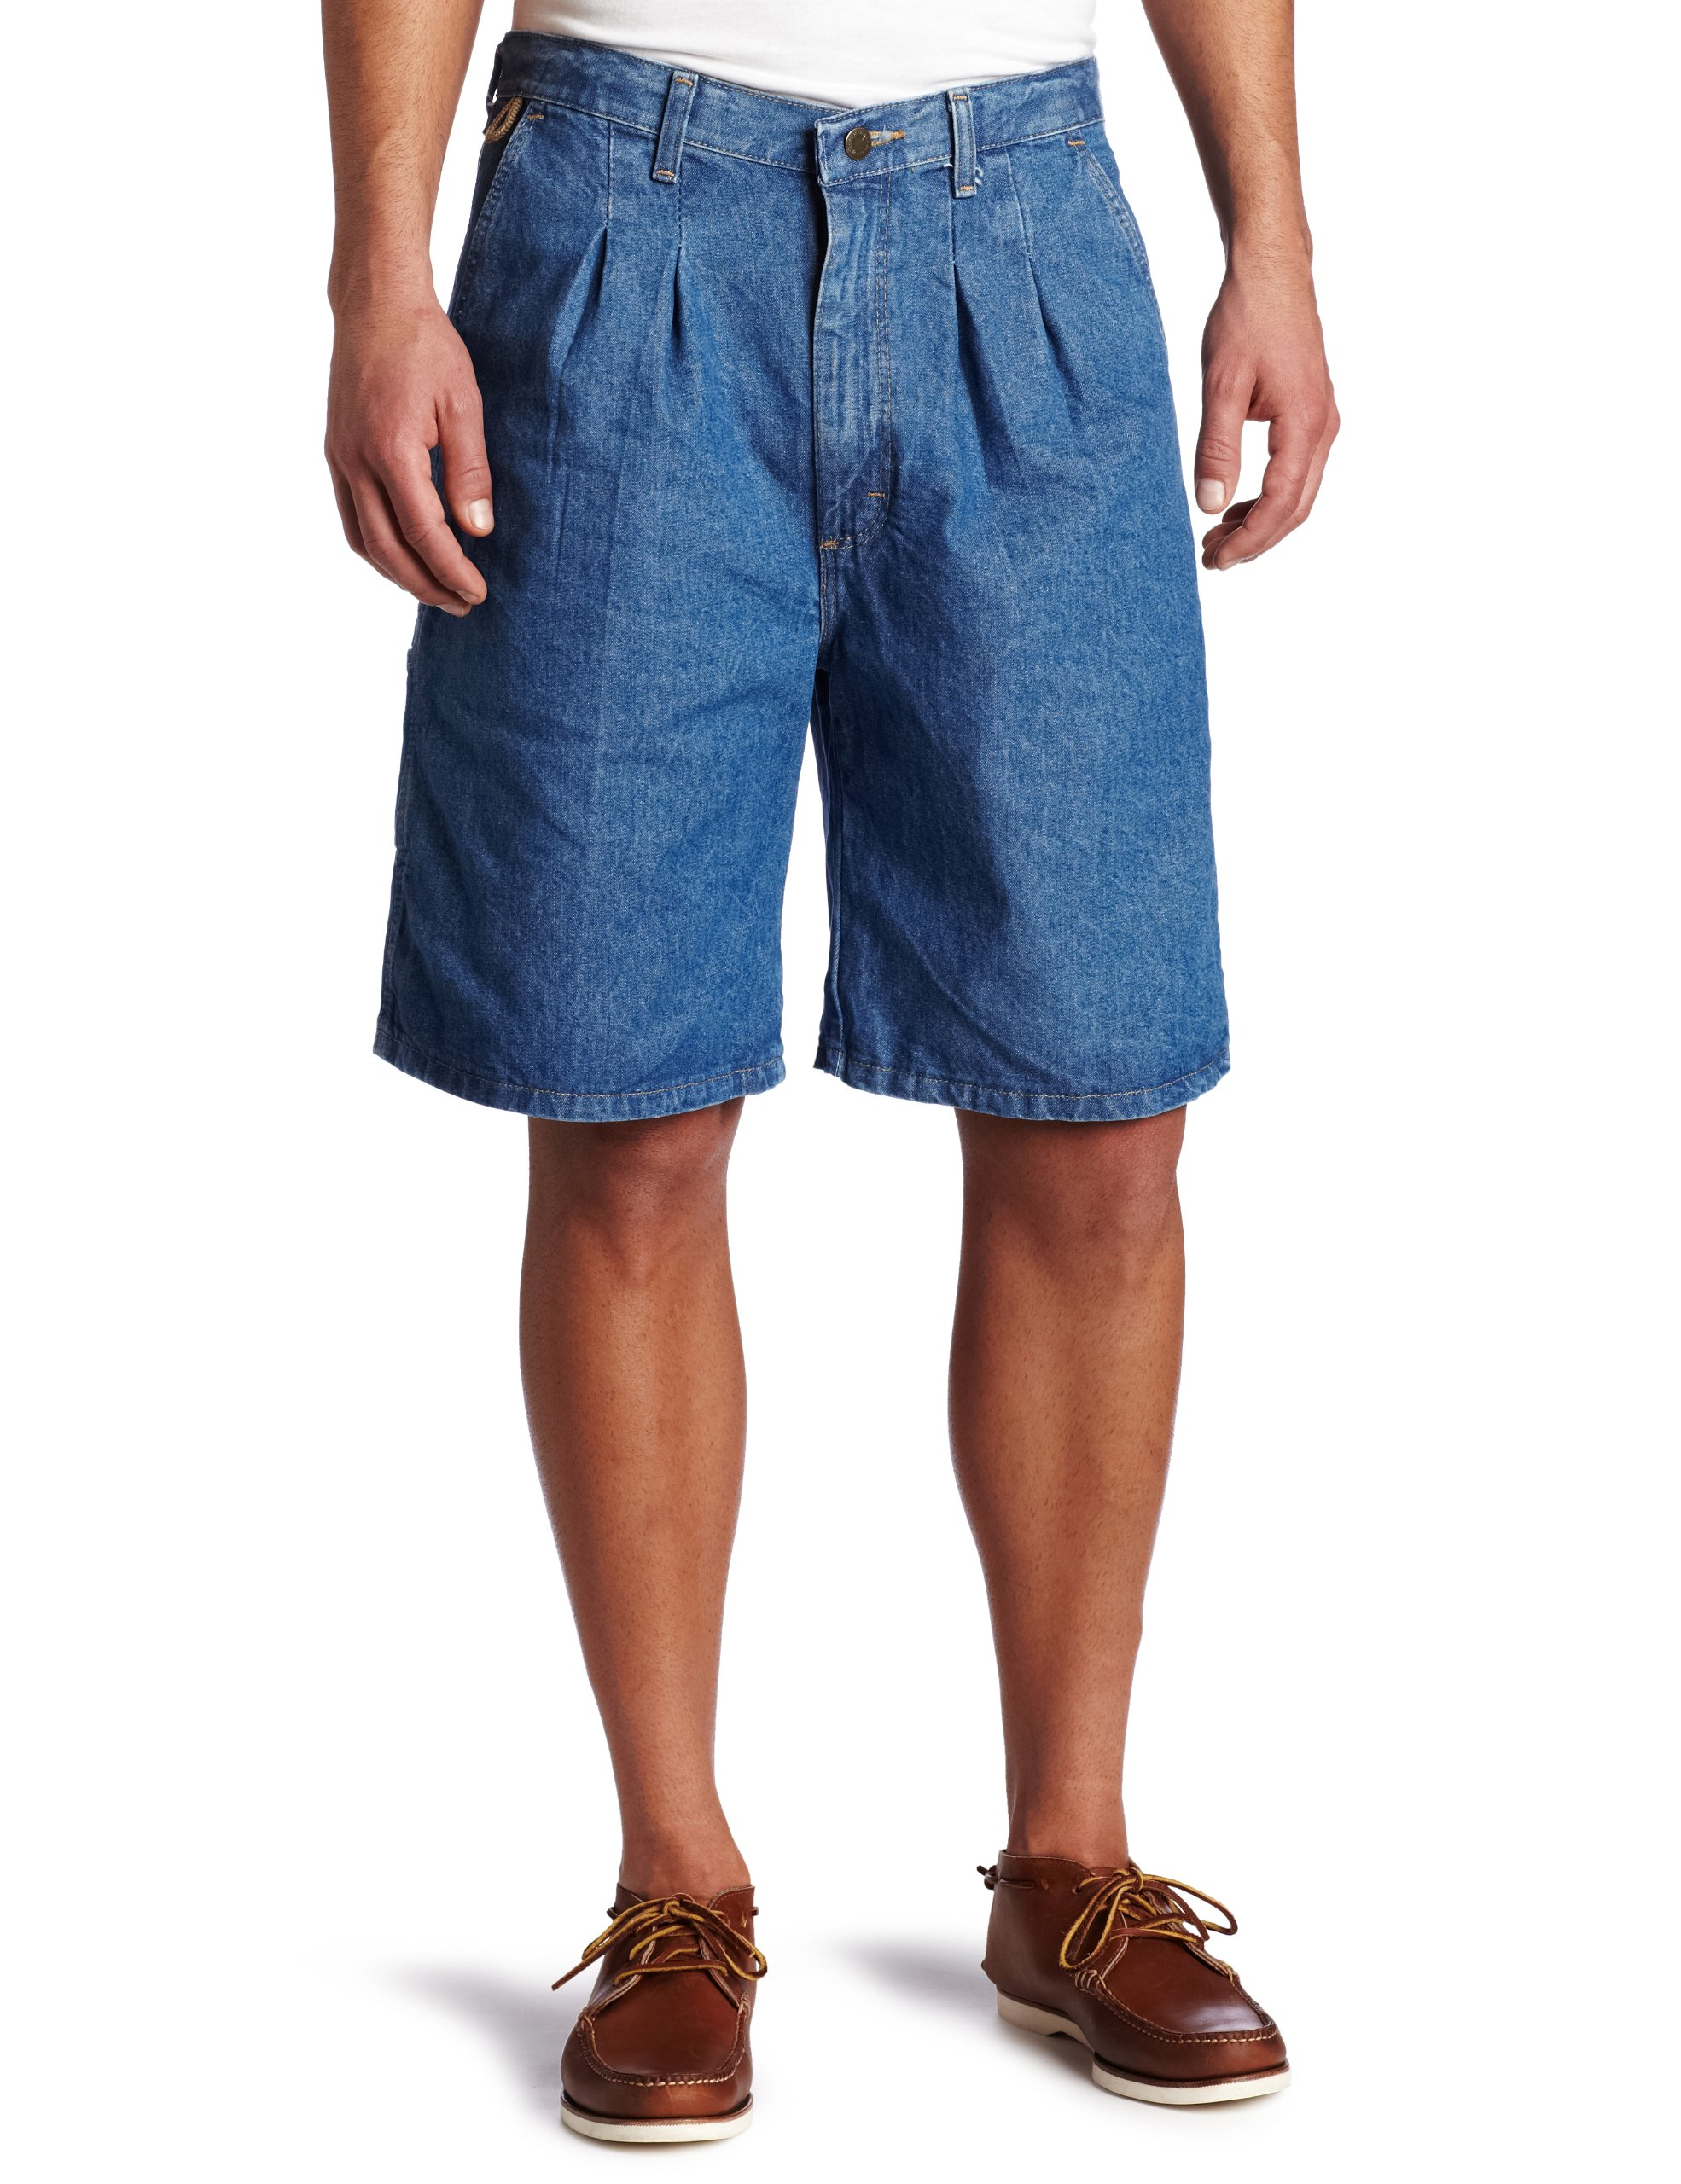 Wrangler Men's Rugged Wear Angler Short, Indigo, 36 by Wrangler